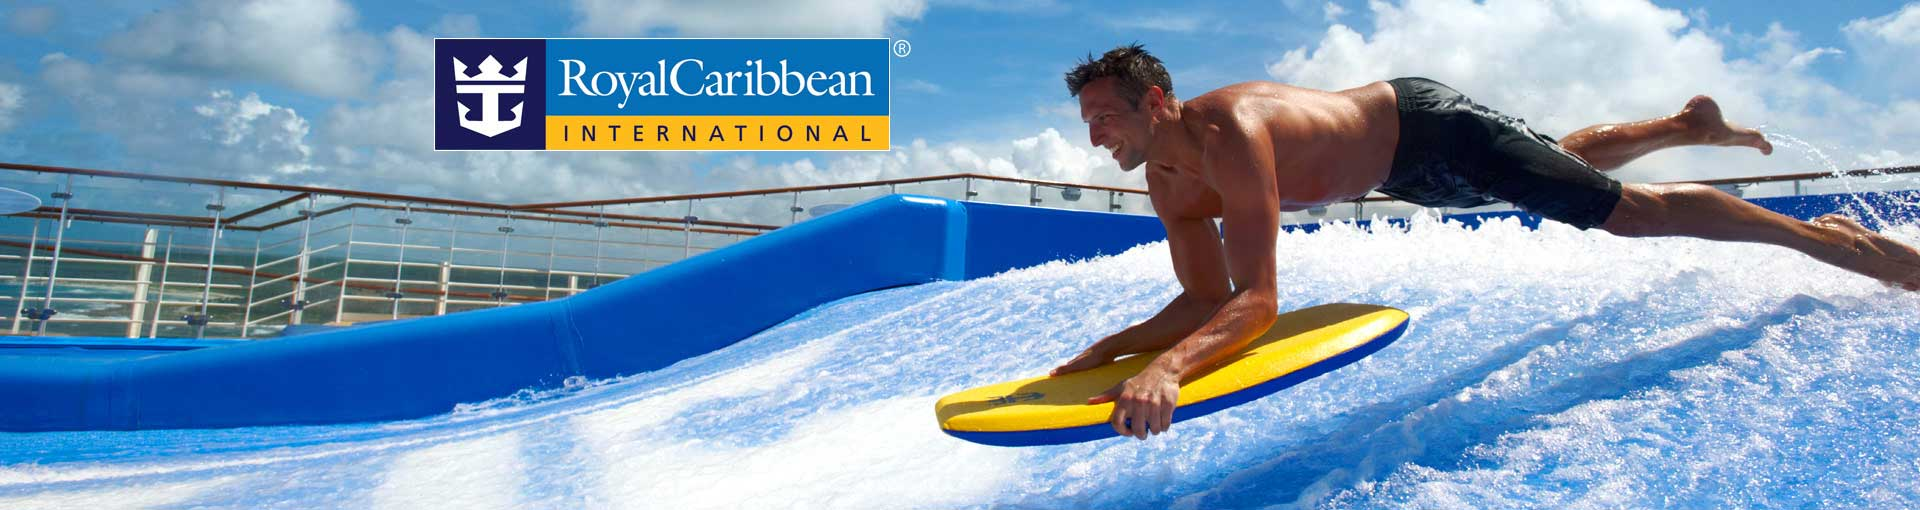 Deals caribbean cruise